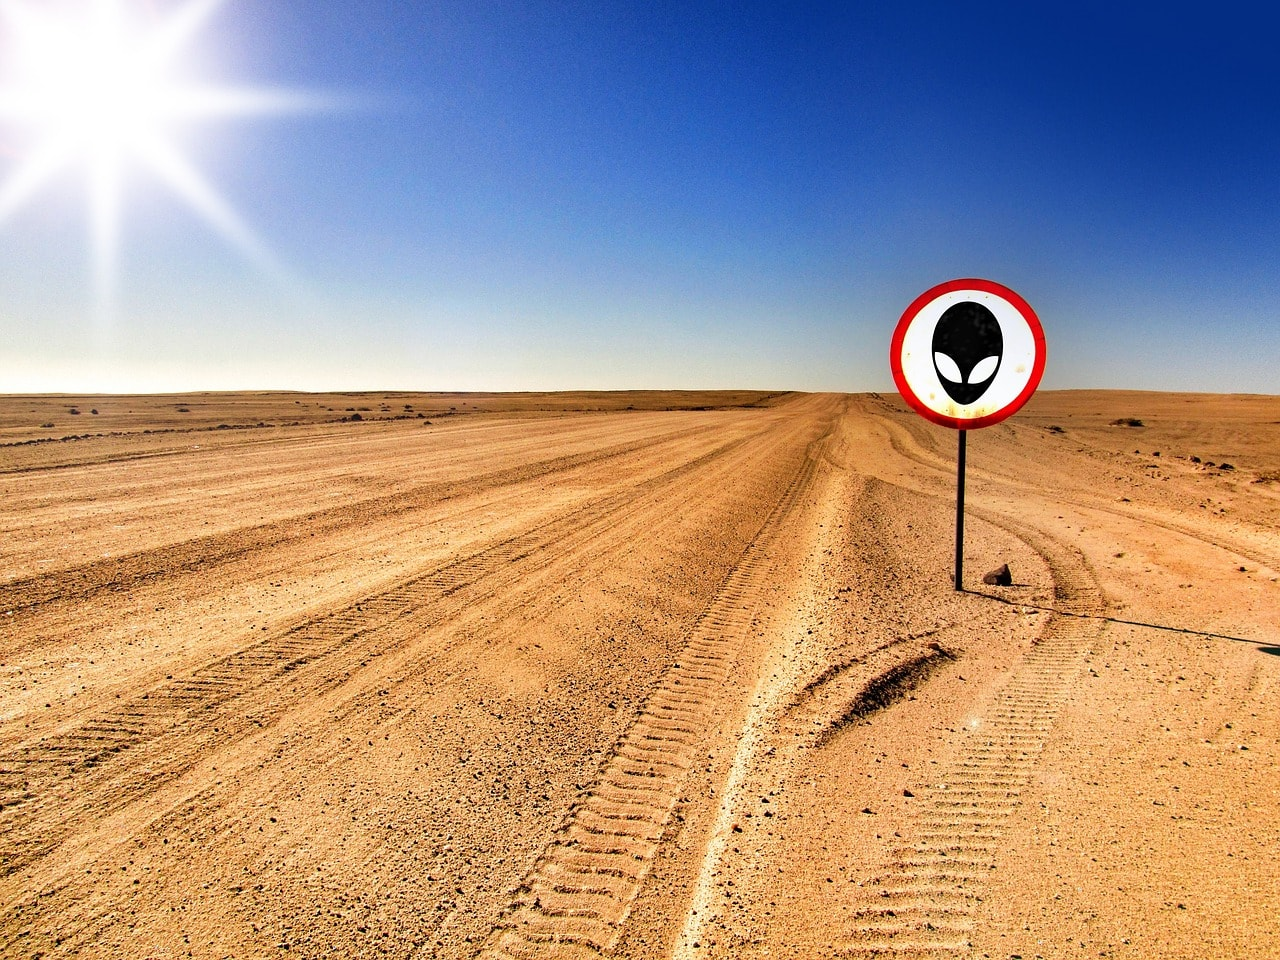 Area 51 by NeuPaddy; pixabay.com; Creative Commons CC0